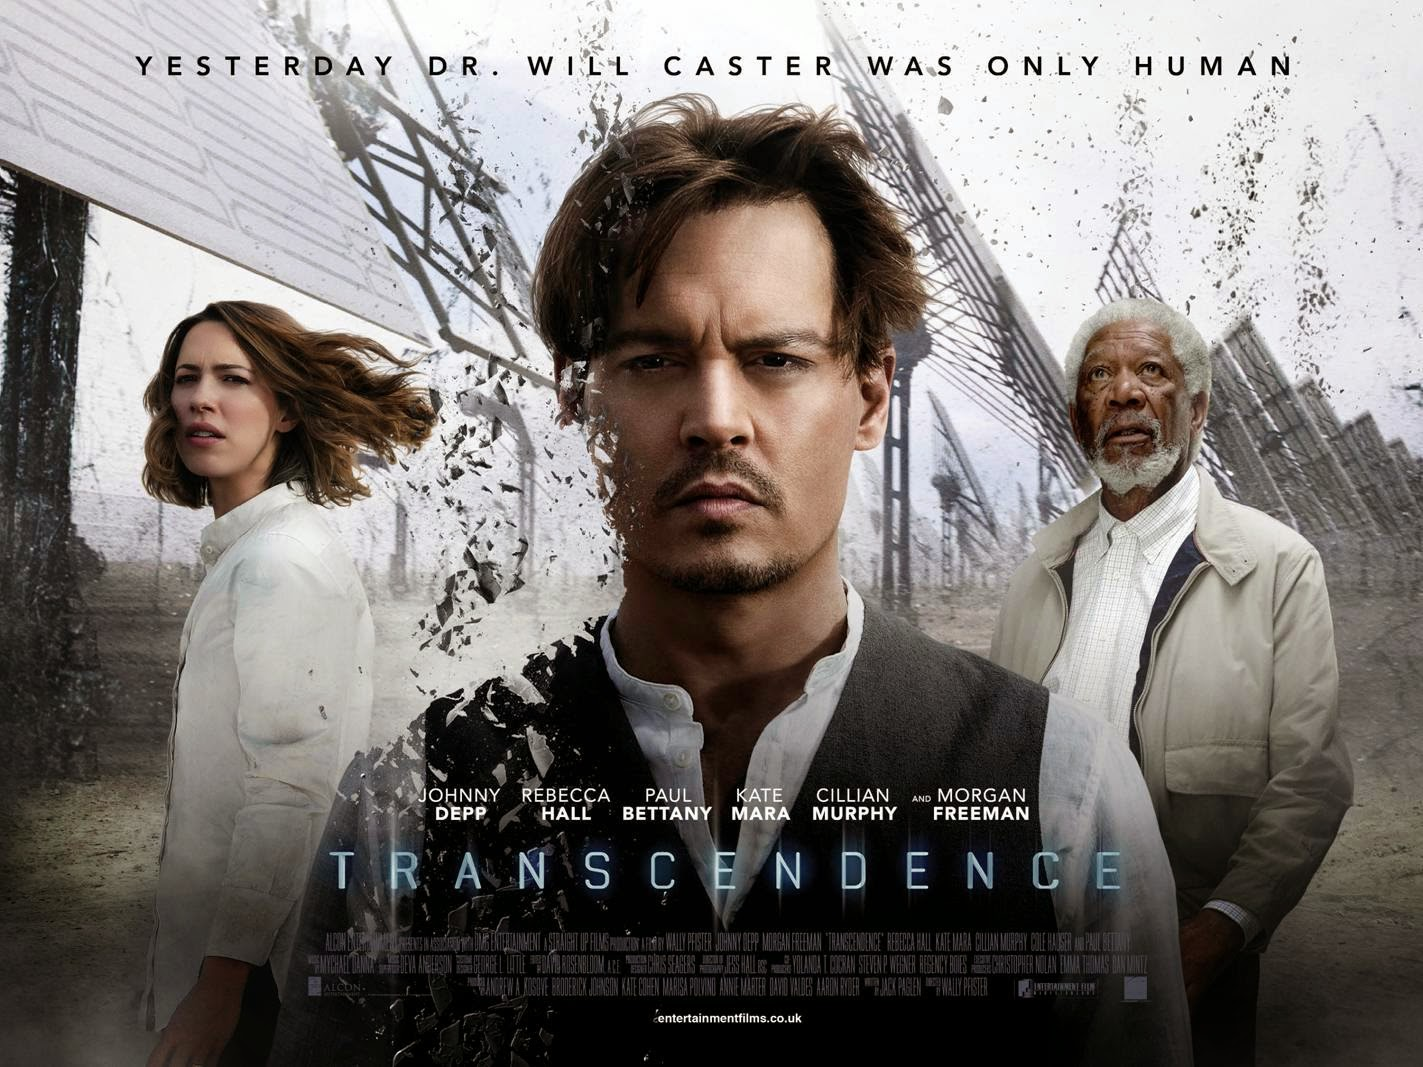 Transcendence Movie Features Real Upcoming Technologies